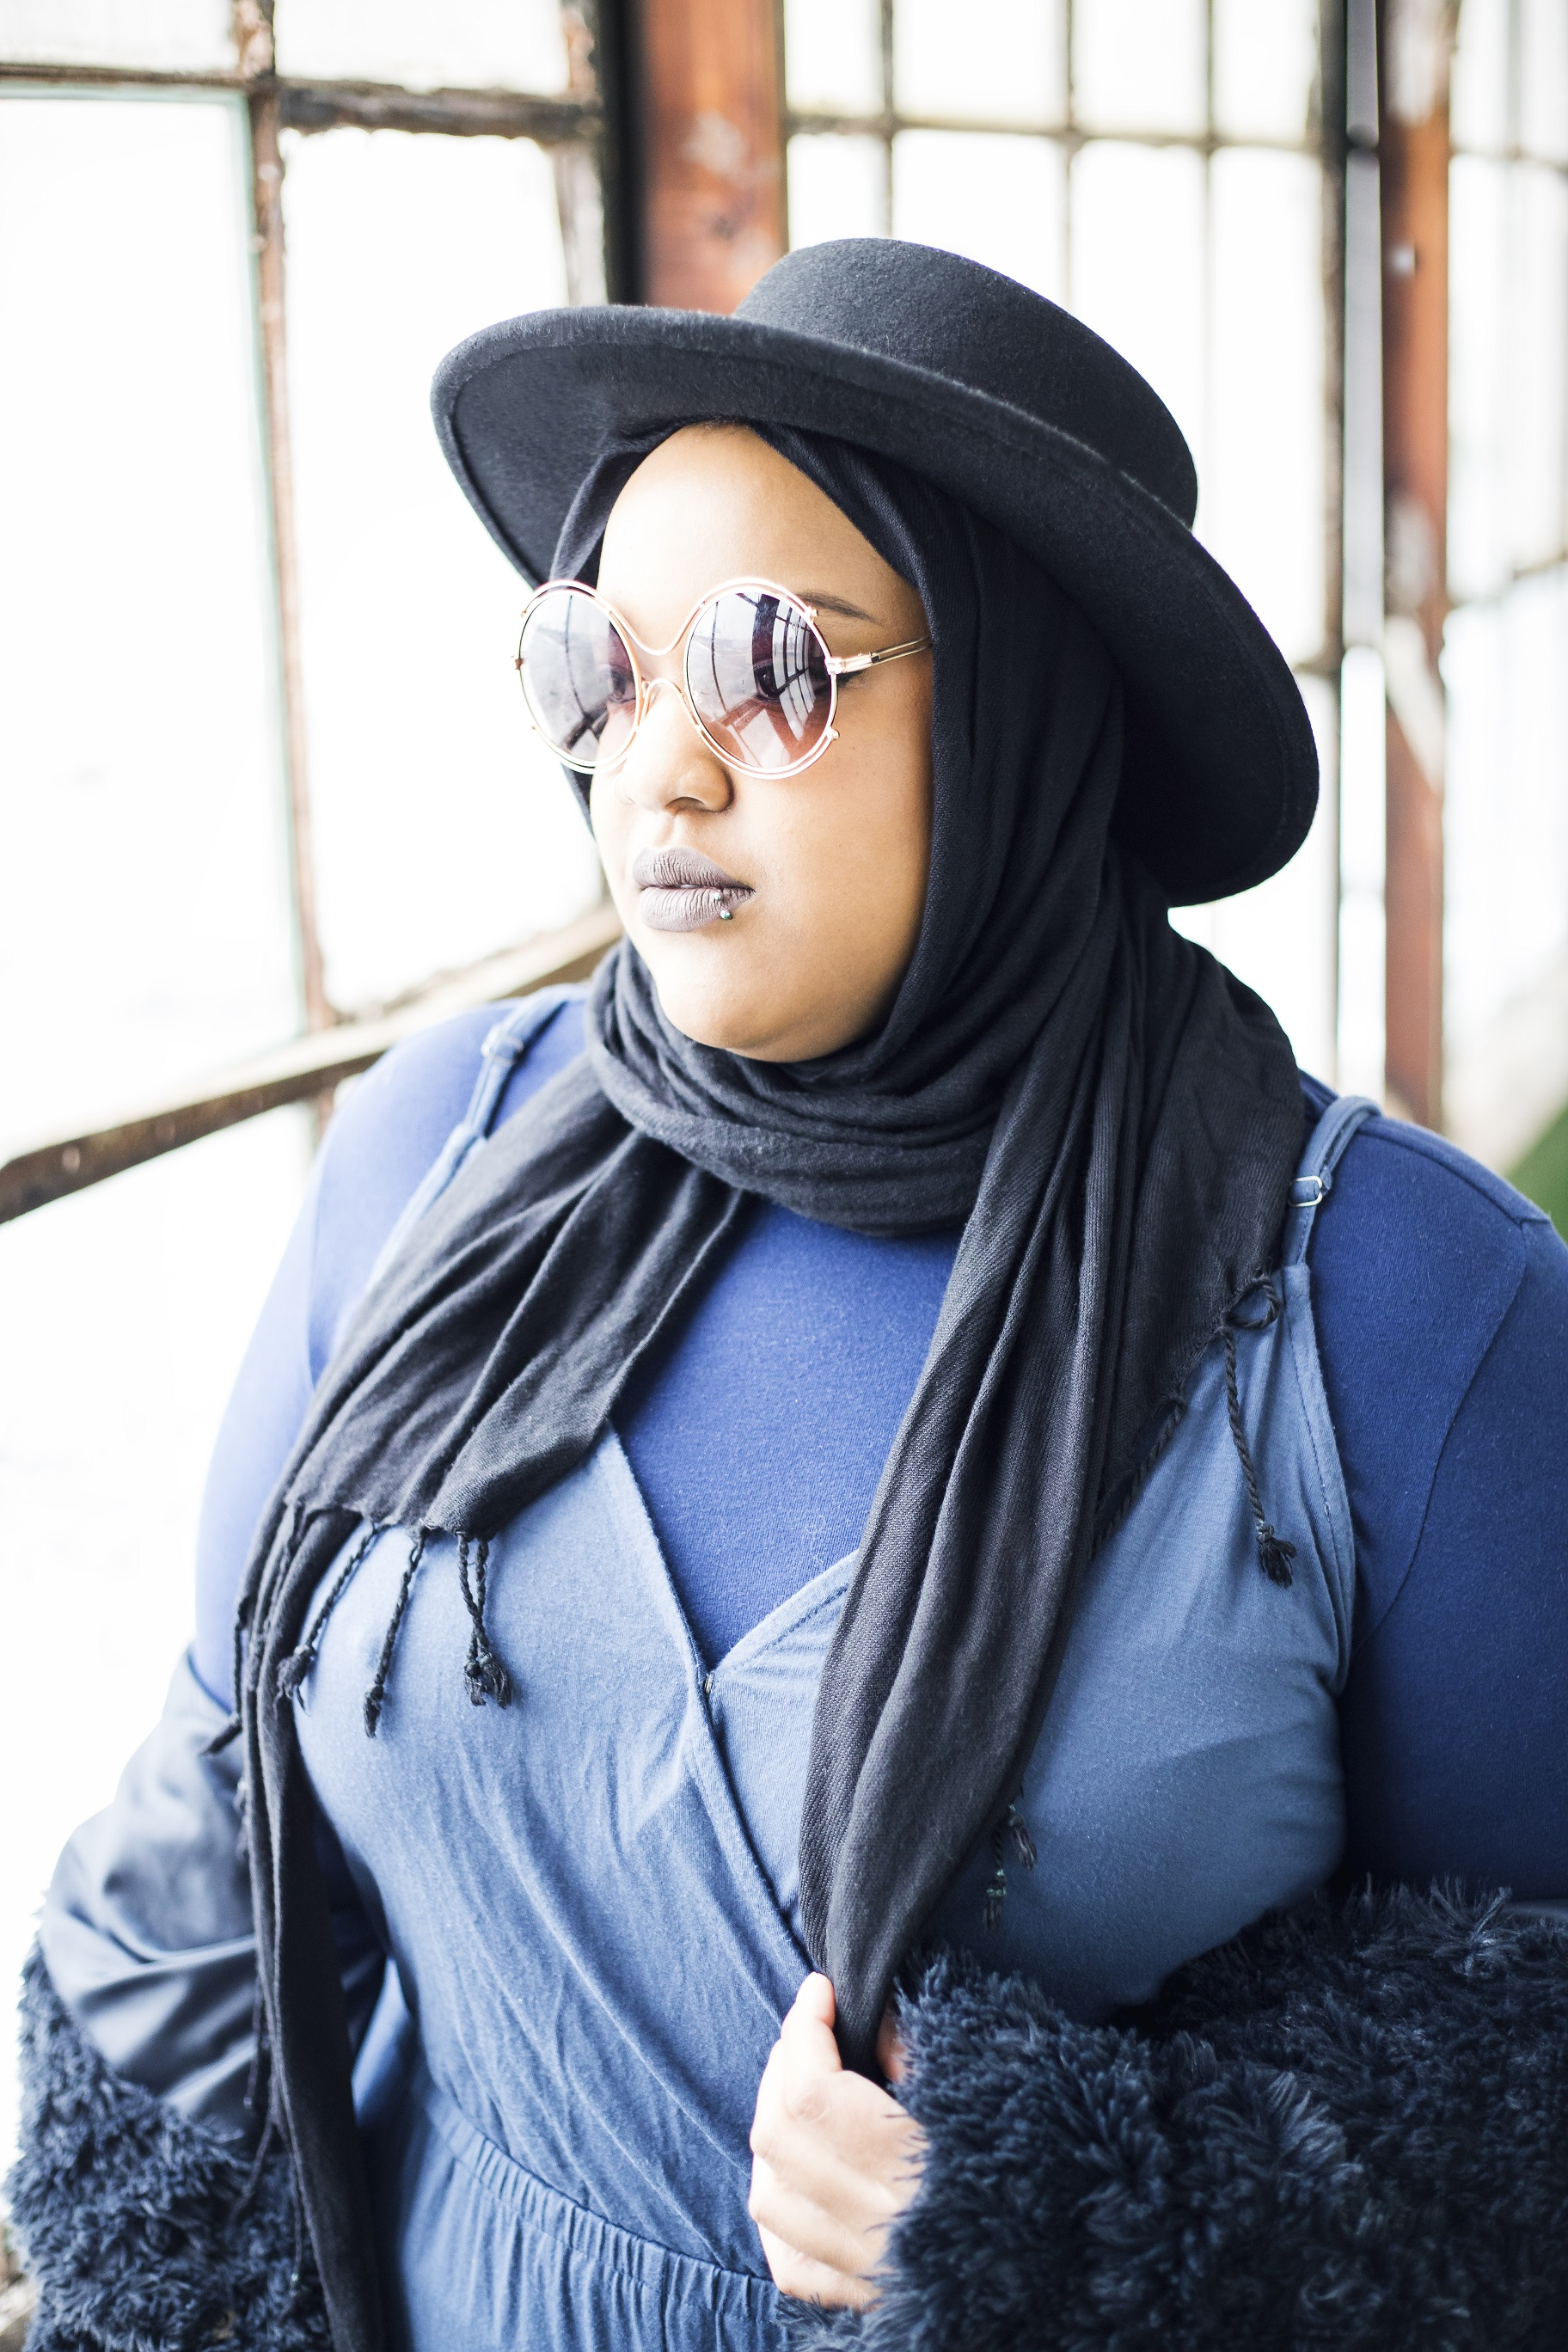 Leah-Vernon-body-positive-plus-size-muslim-girl-model-3